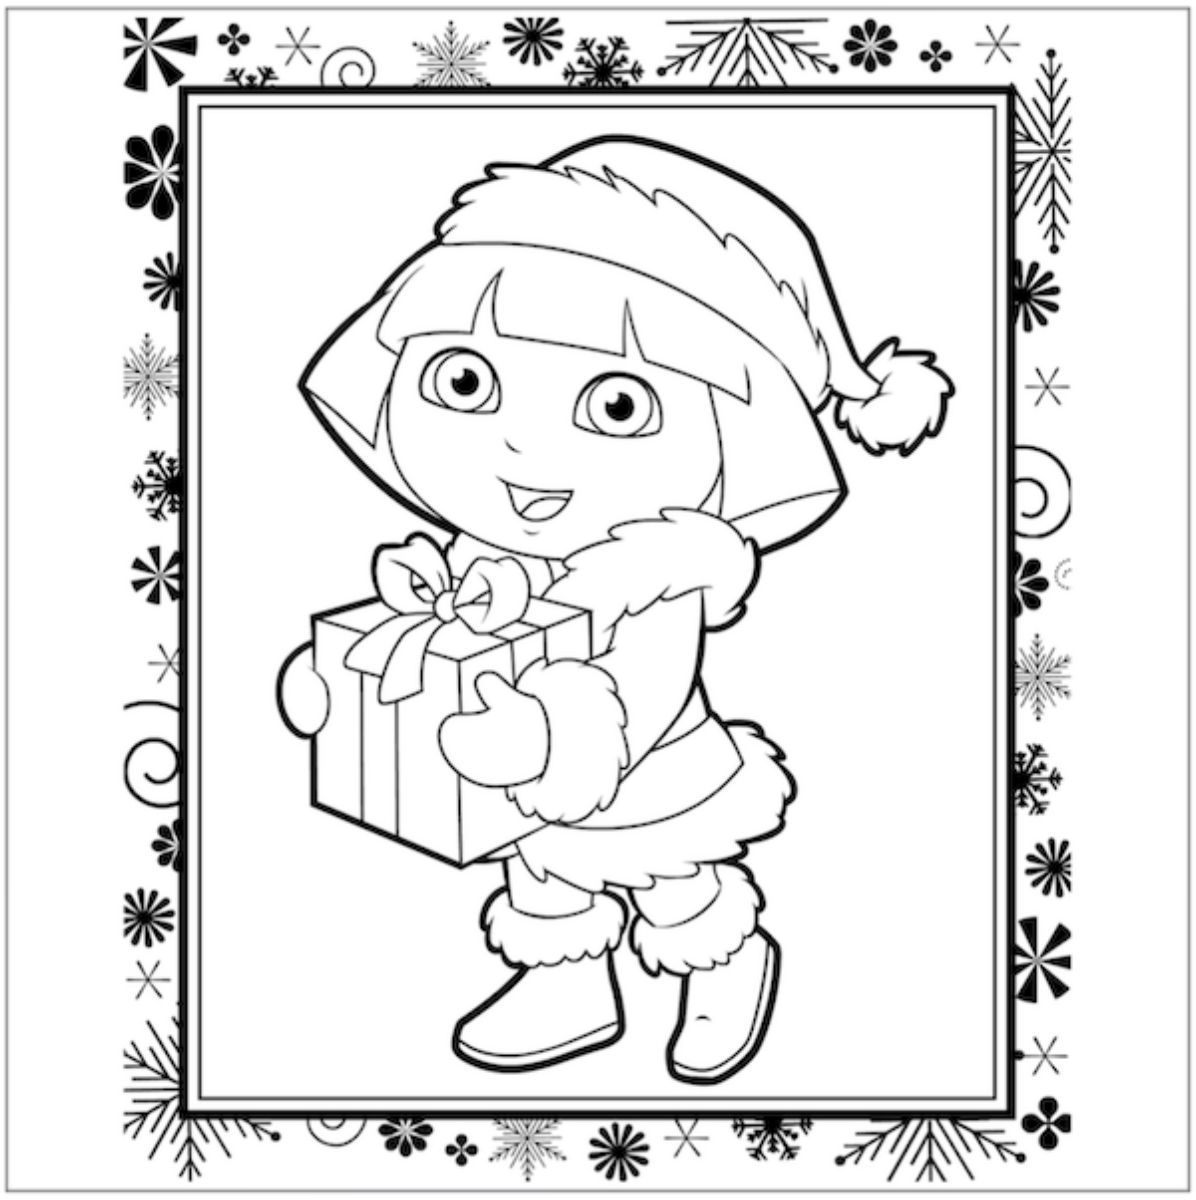 Pin By Laura On Izkrasot Printable Christmas Coloring Pages Christmas Coloring Pages Christmas Coloring Books